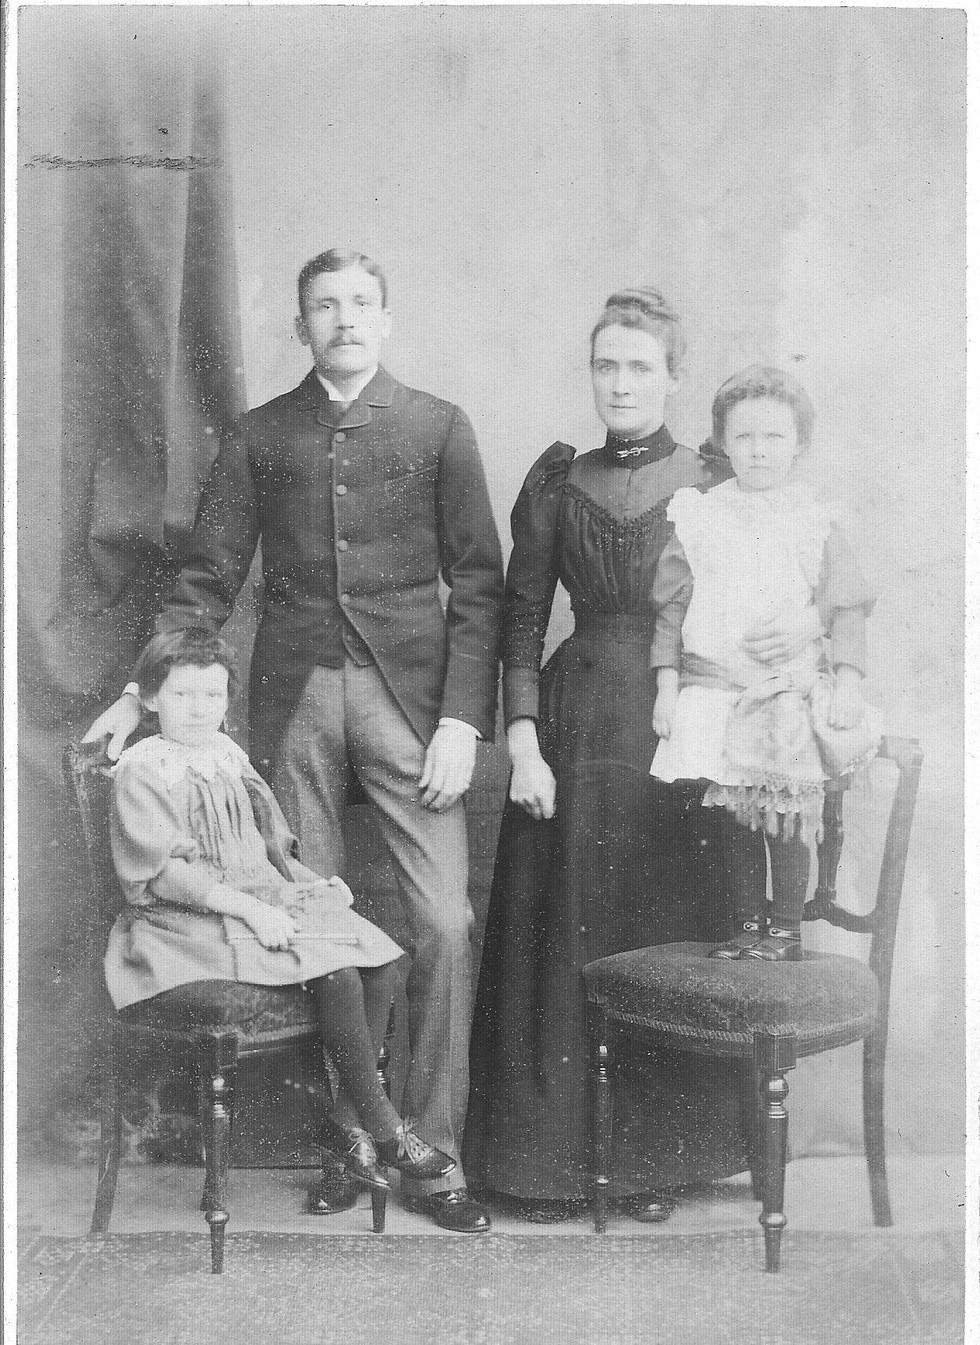 Family Photos What Are They Wearing Findmypast